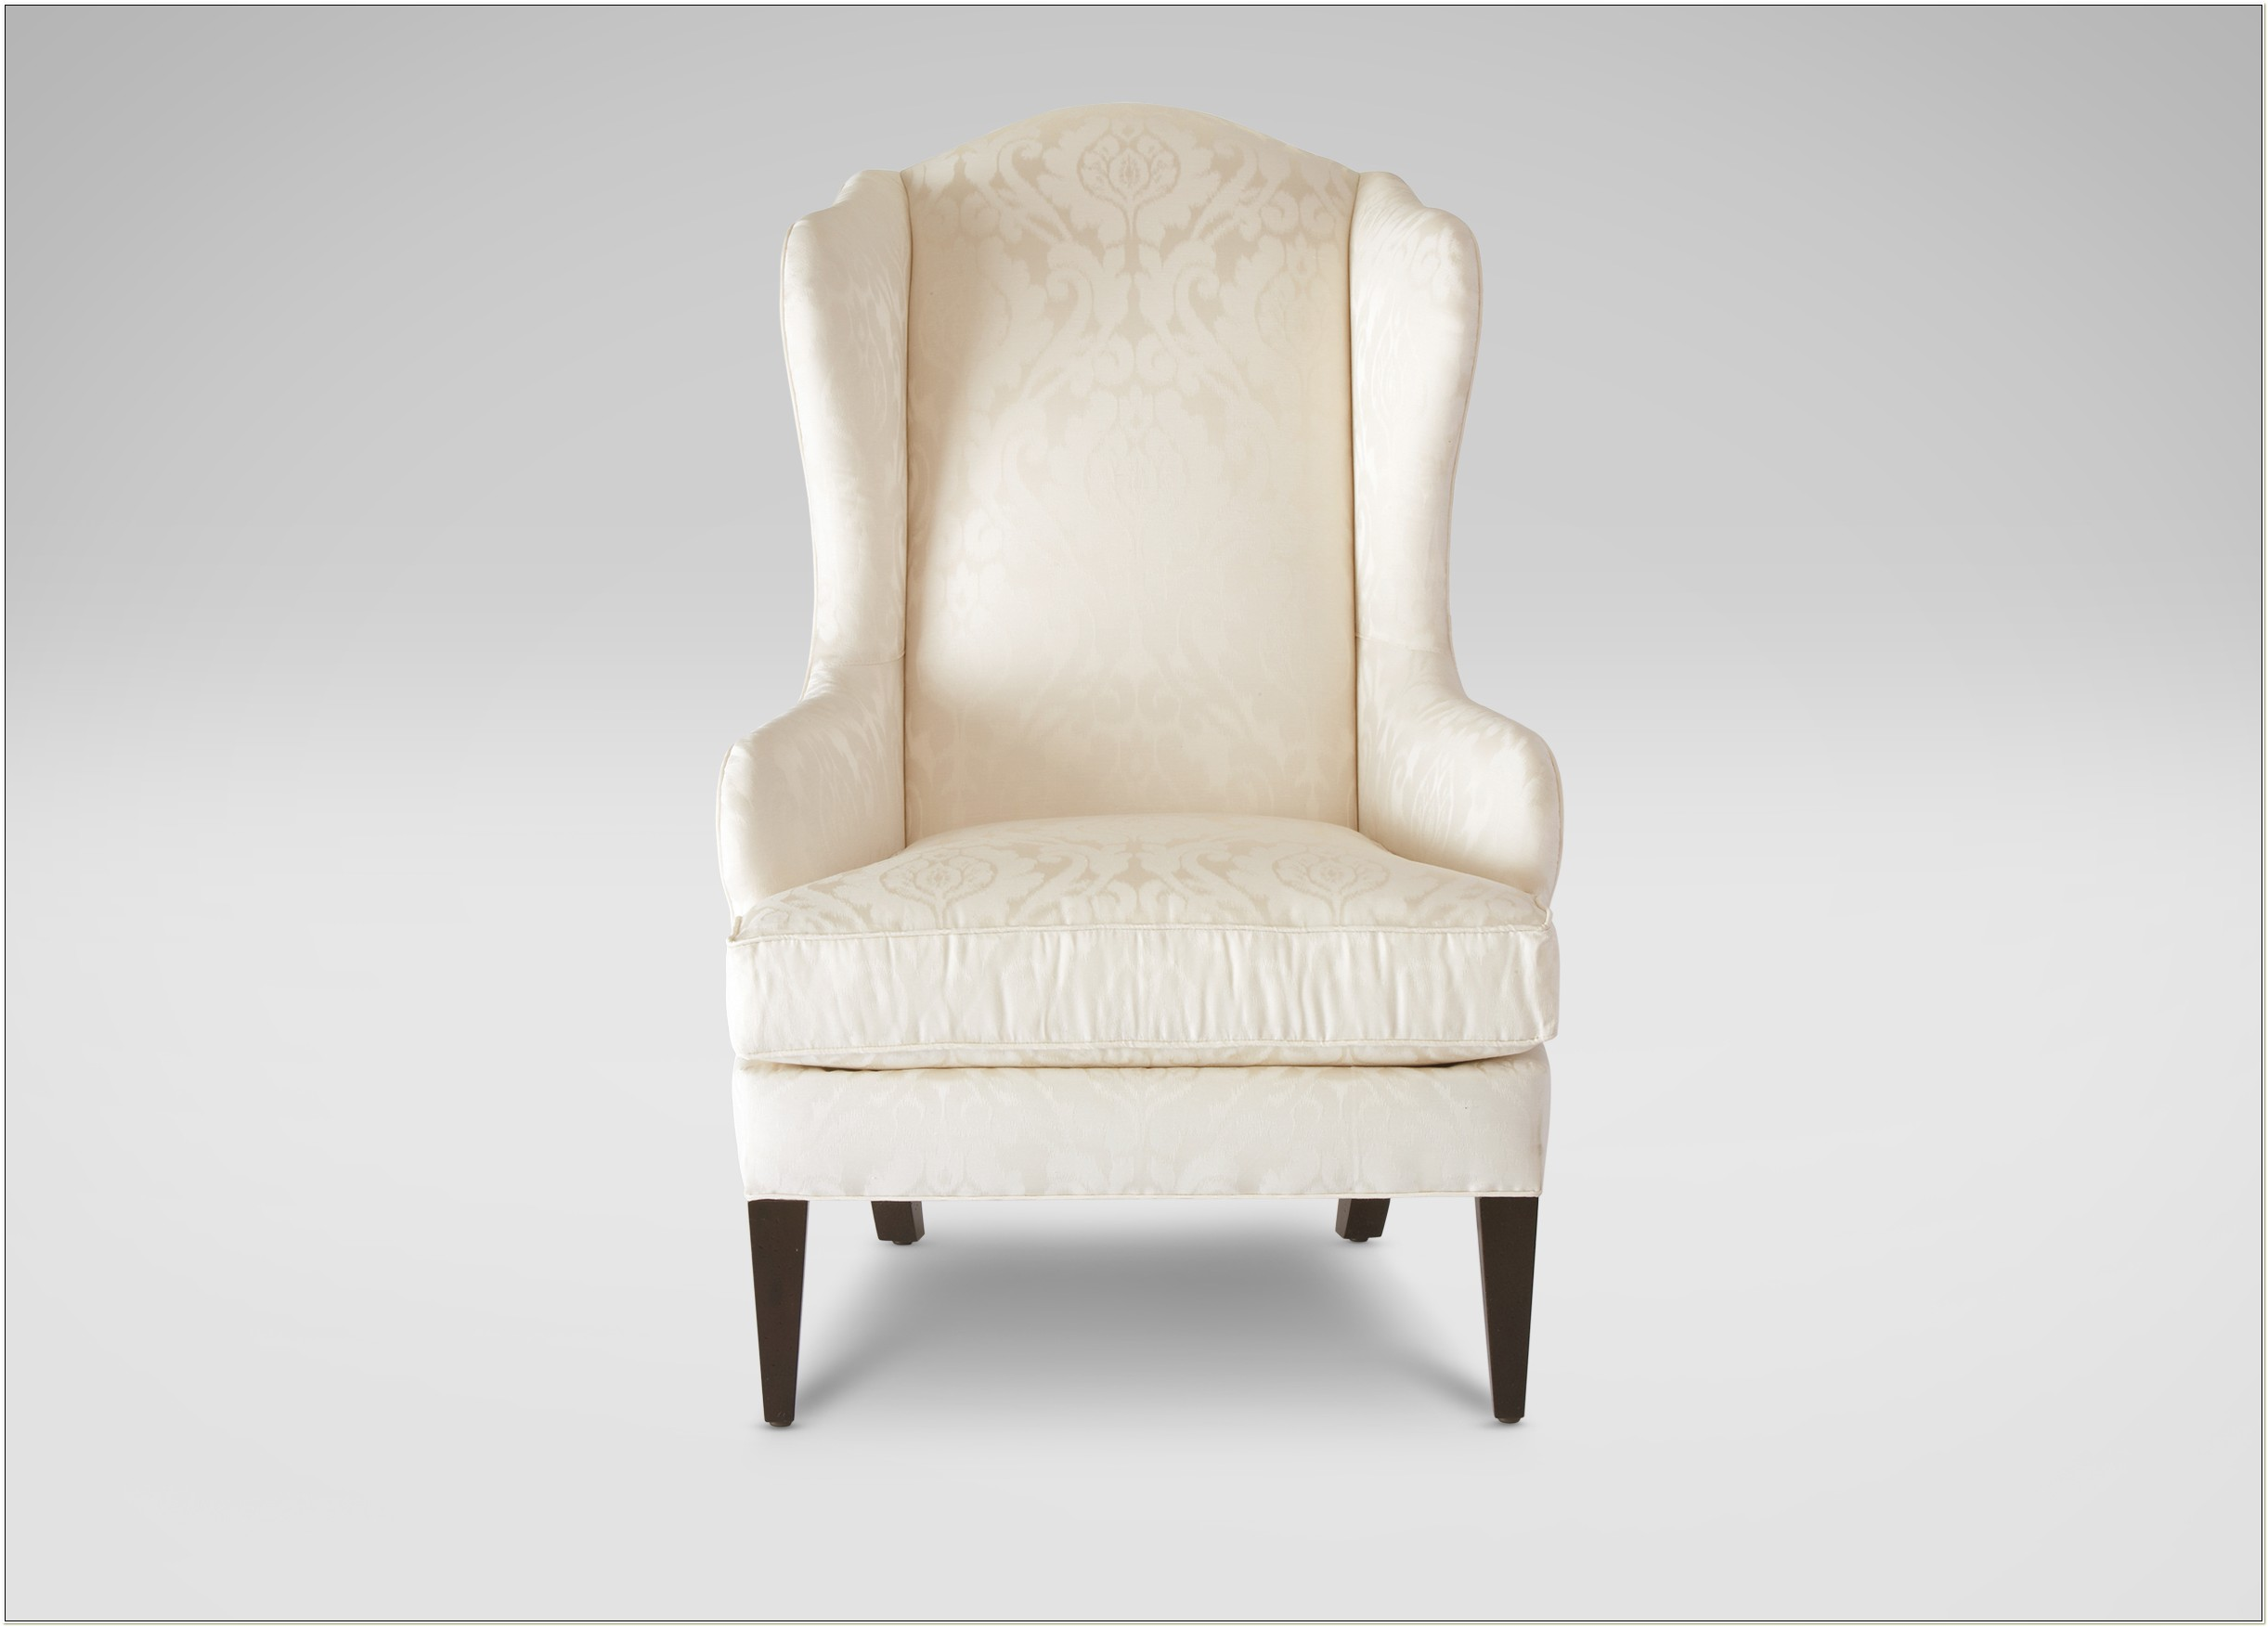 Ethan Allen Wingback Chair Slipcovers